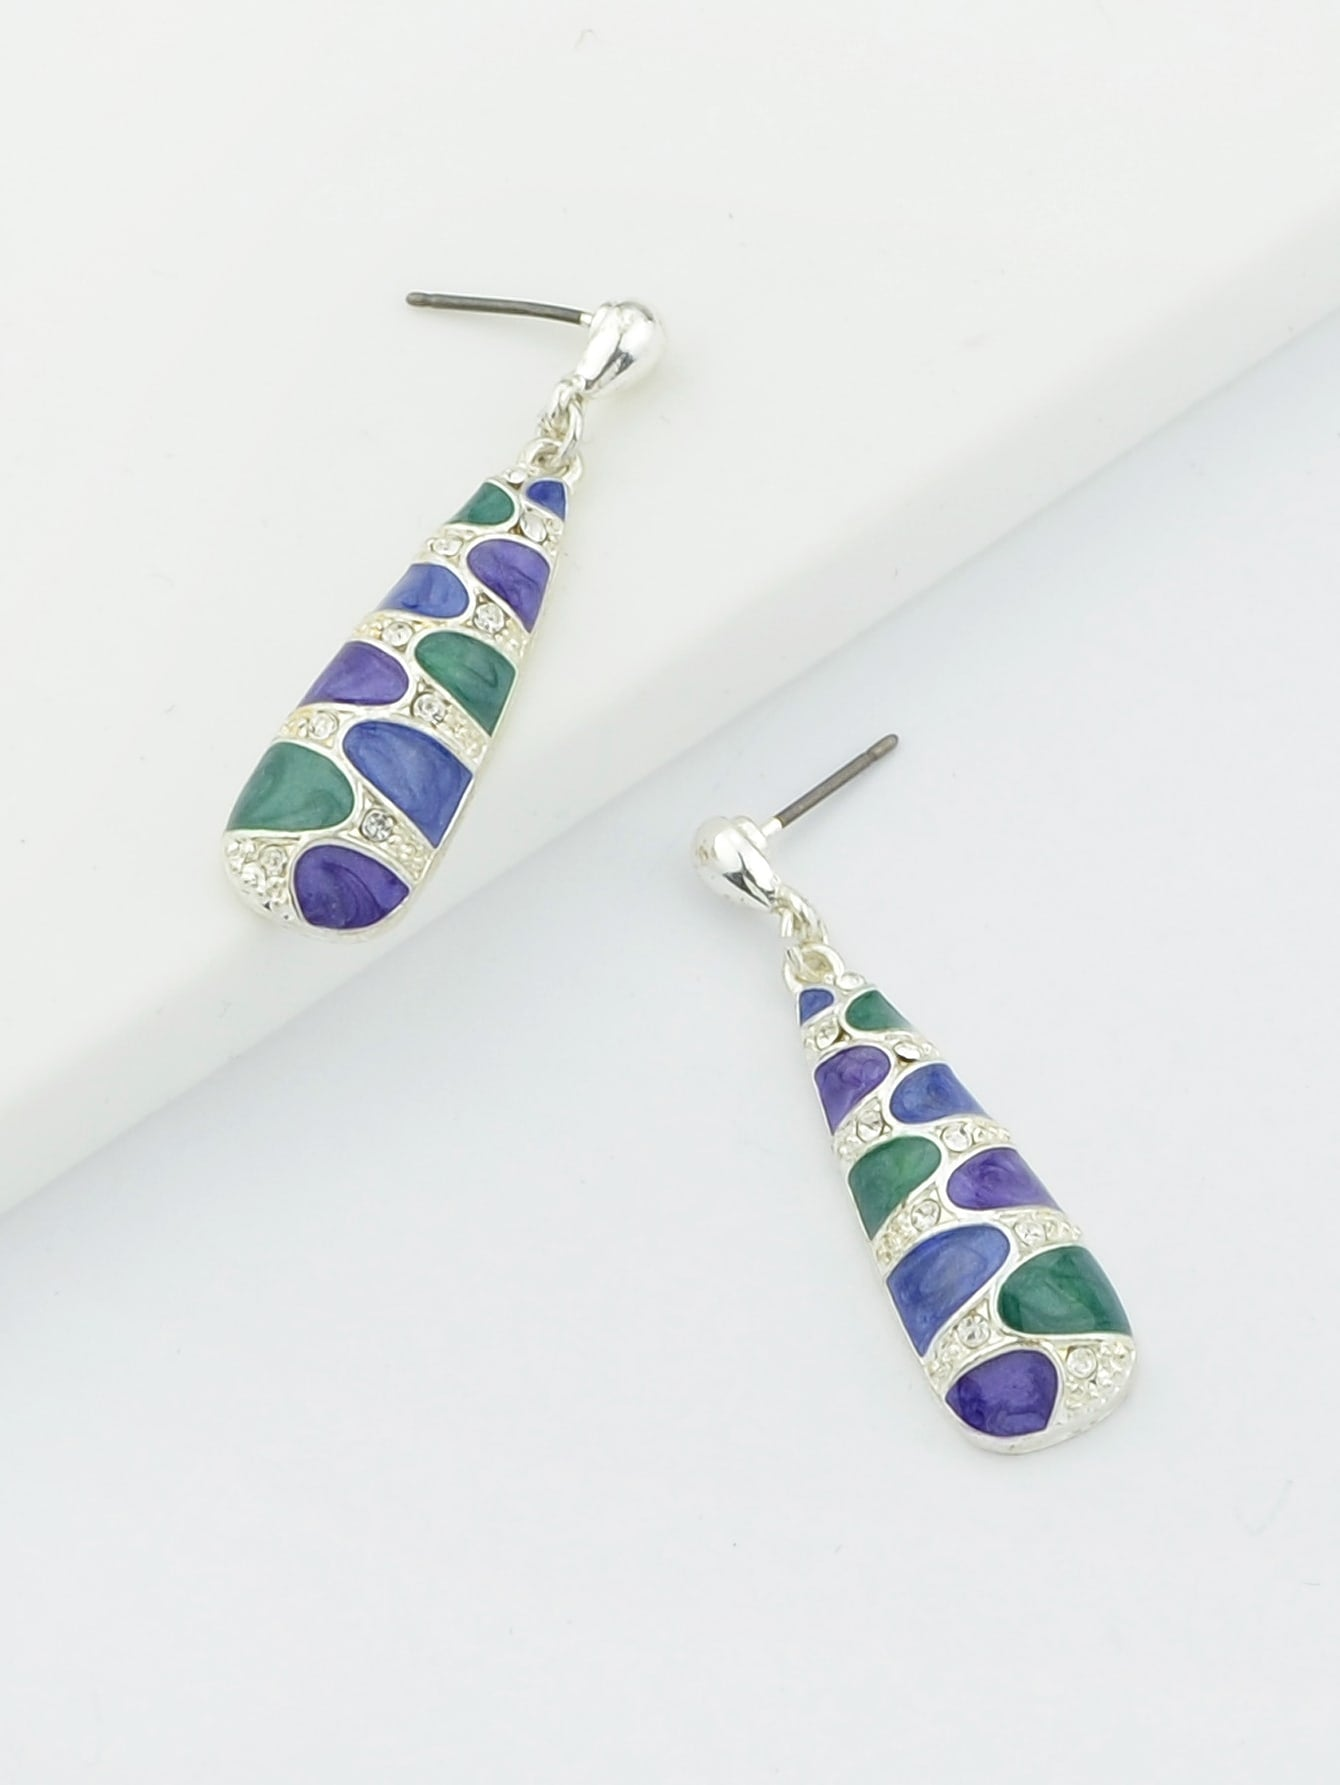 Colorful Enamel Silver Dangle Earrings From India